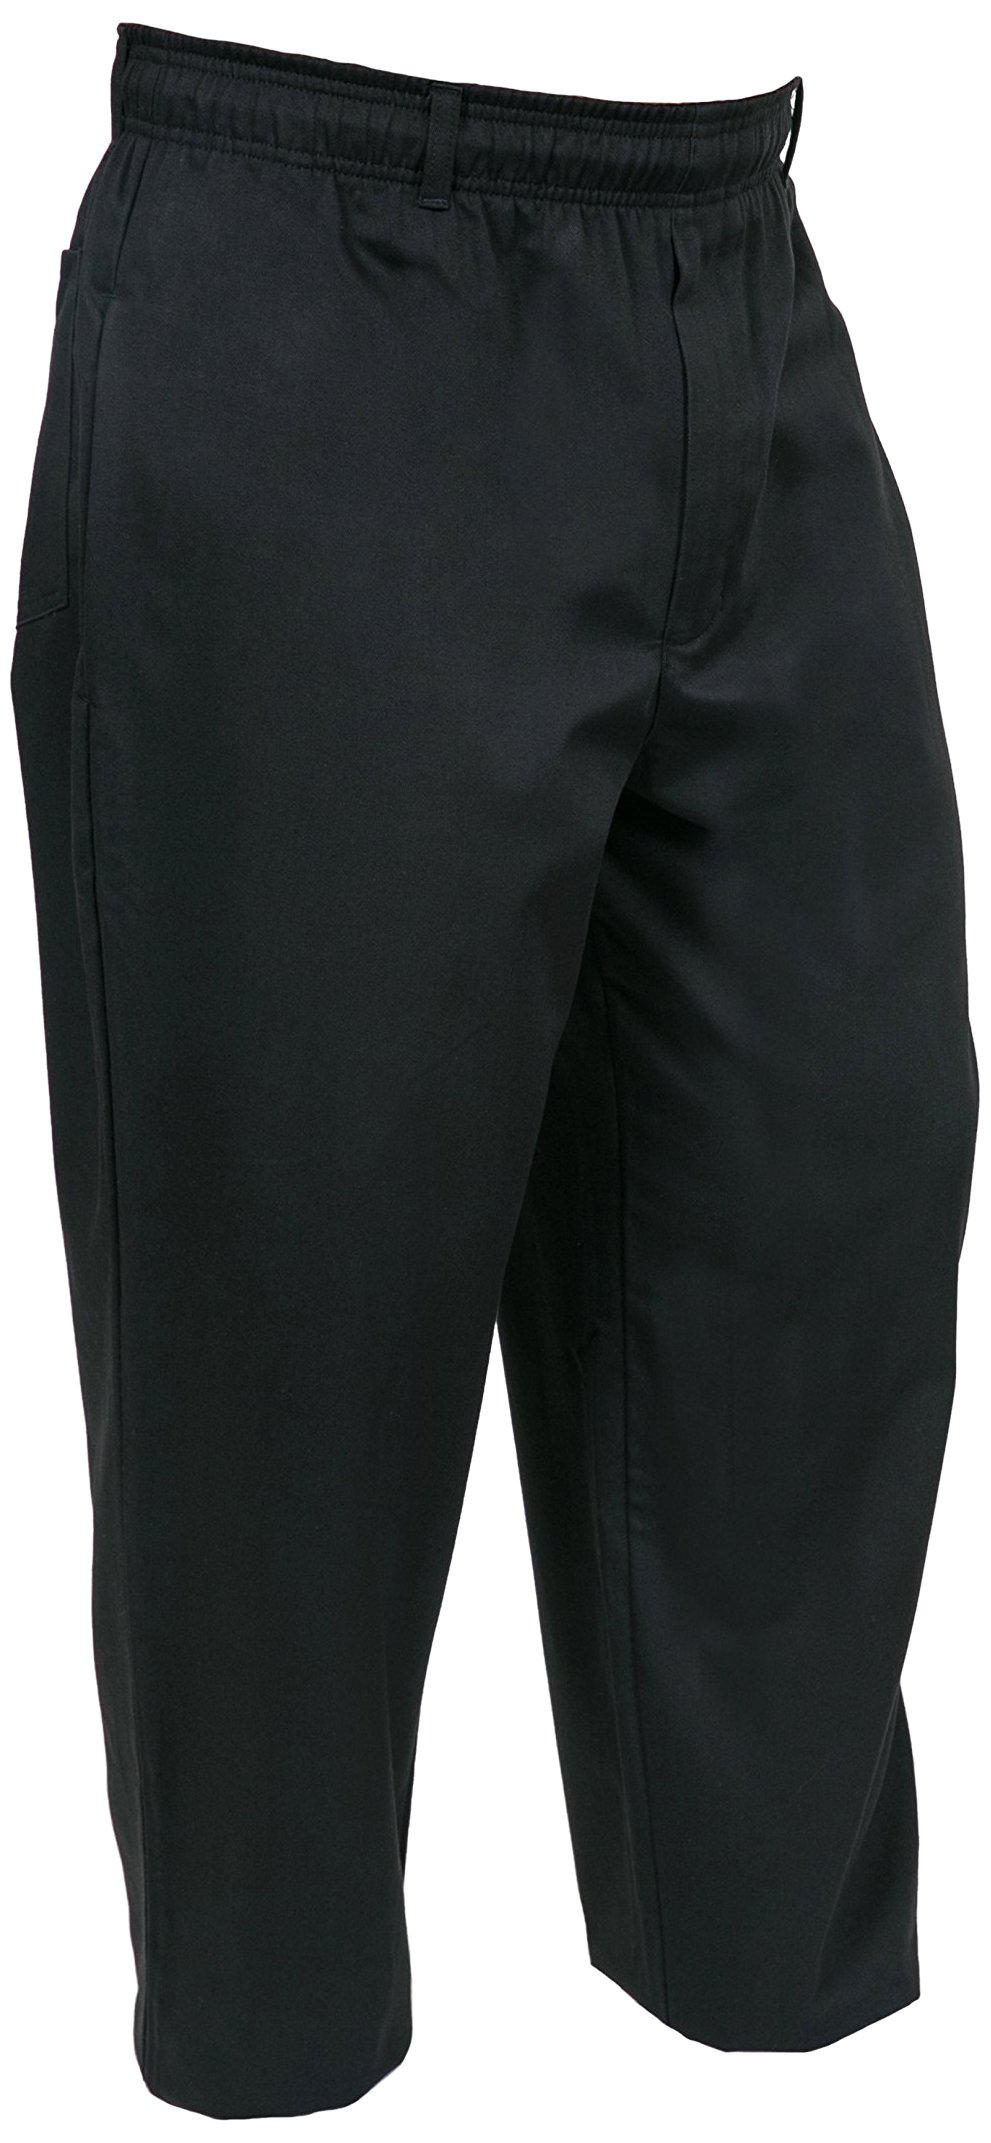 Mercer Culinary M61060BK6X Genesis Men's Chef Pant, 6X-Large, Black by Mercer Culinary